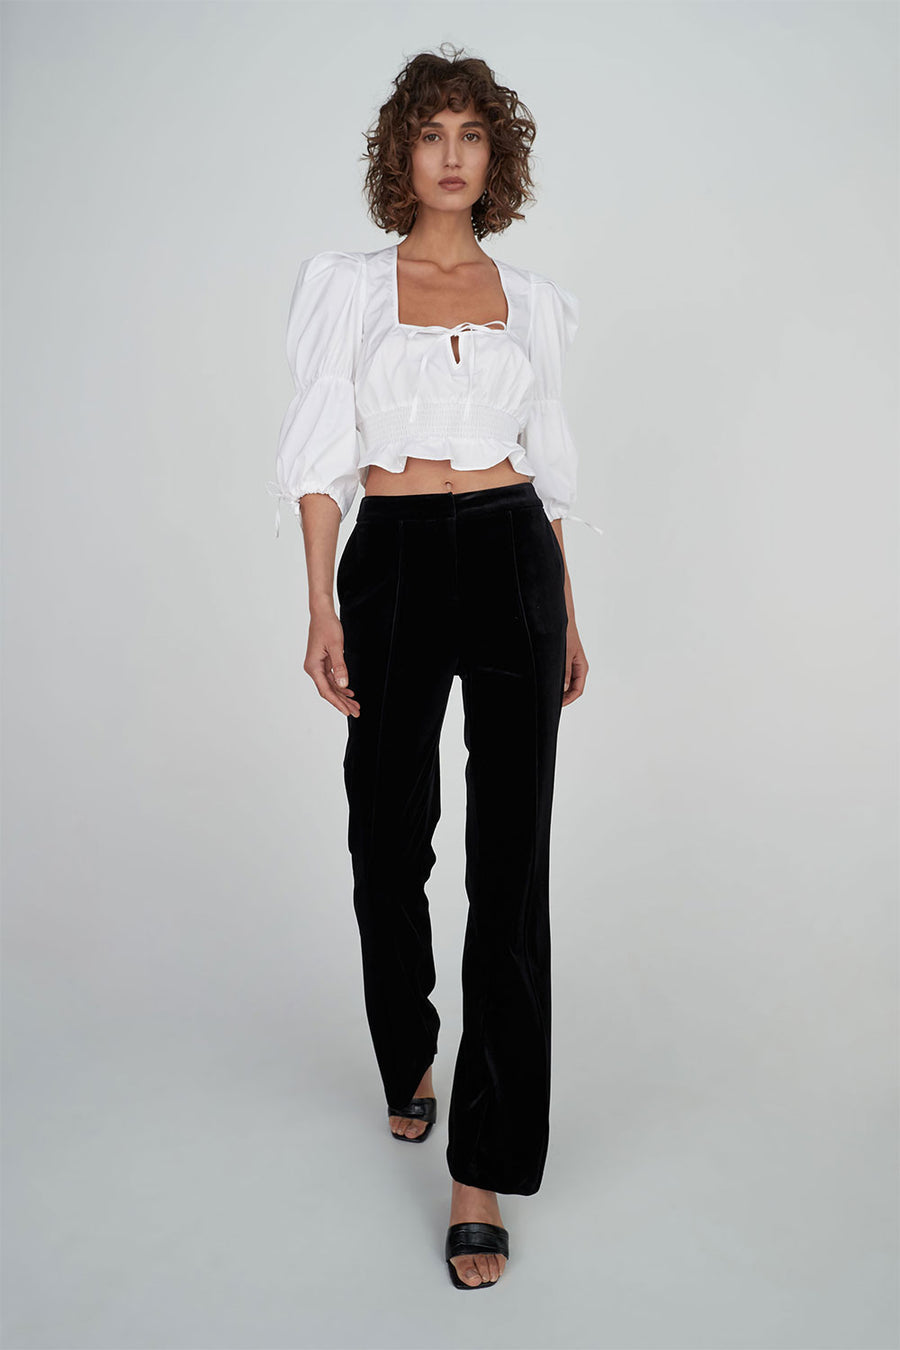 Jezebel Top | White | HANSEN & GRETEL NZ | Tops NZ | Black Box Boutique Auckland | Womens Fashion NZ